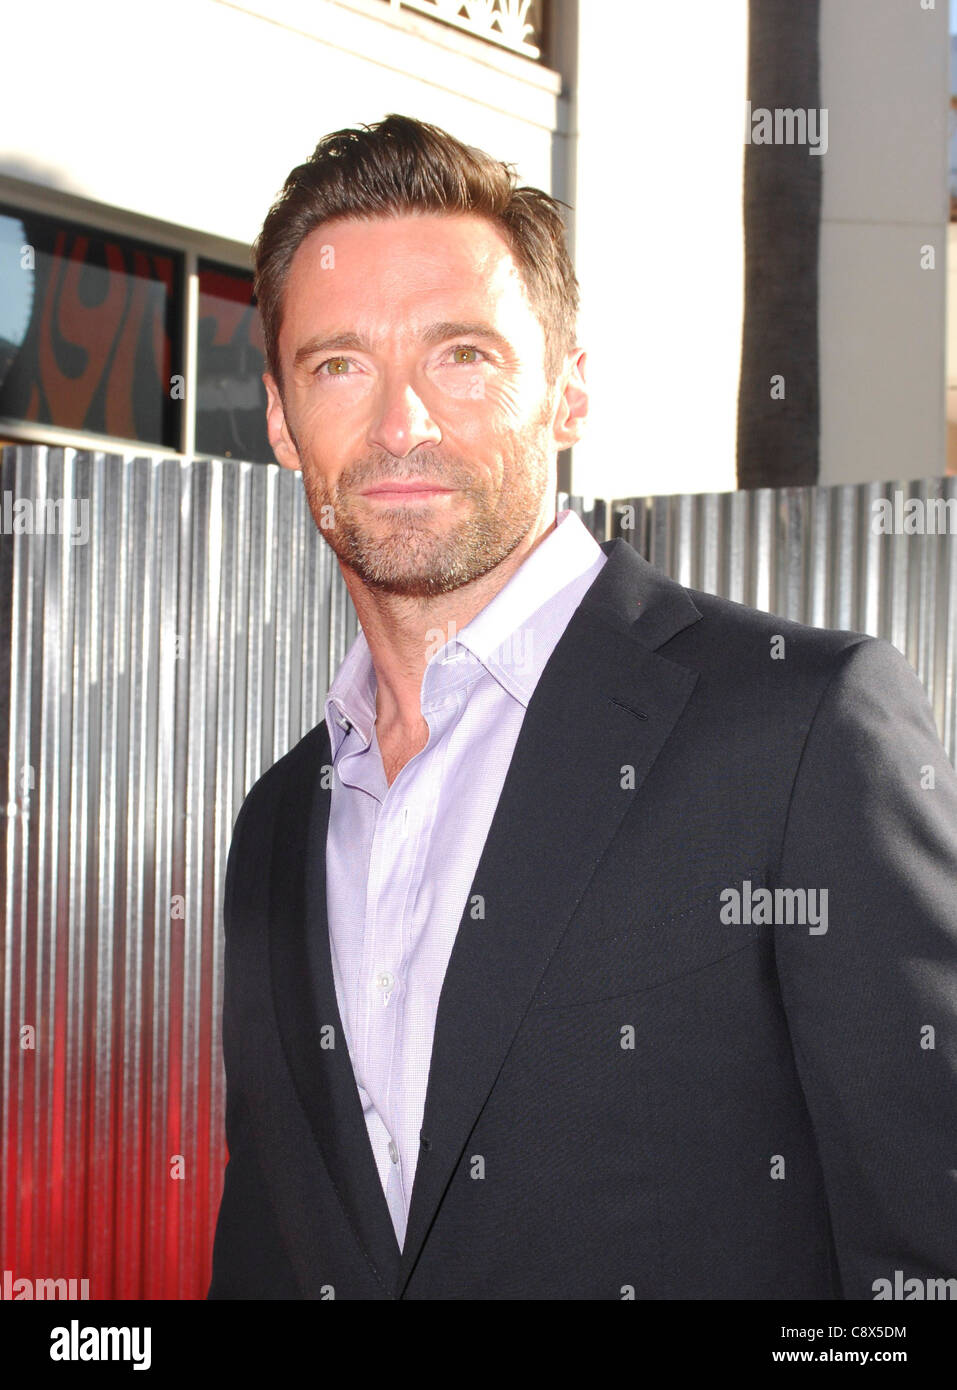 Hugh Jackman arrivals REAL STEEL Premiere Gibson Theatre Universal Studios Hollywood Los Angeles CA October 2 2011 - Stock Image